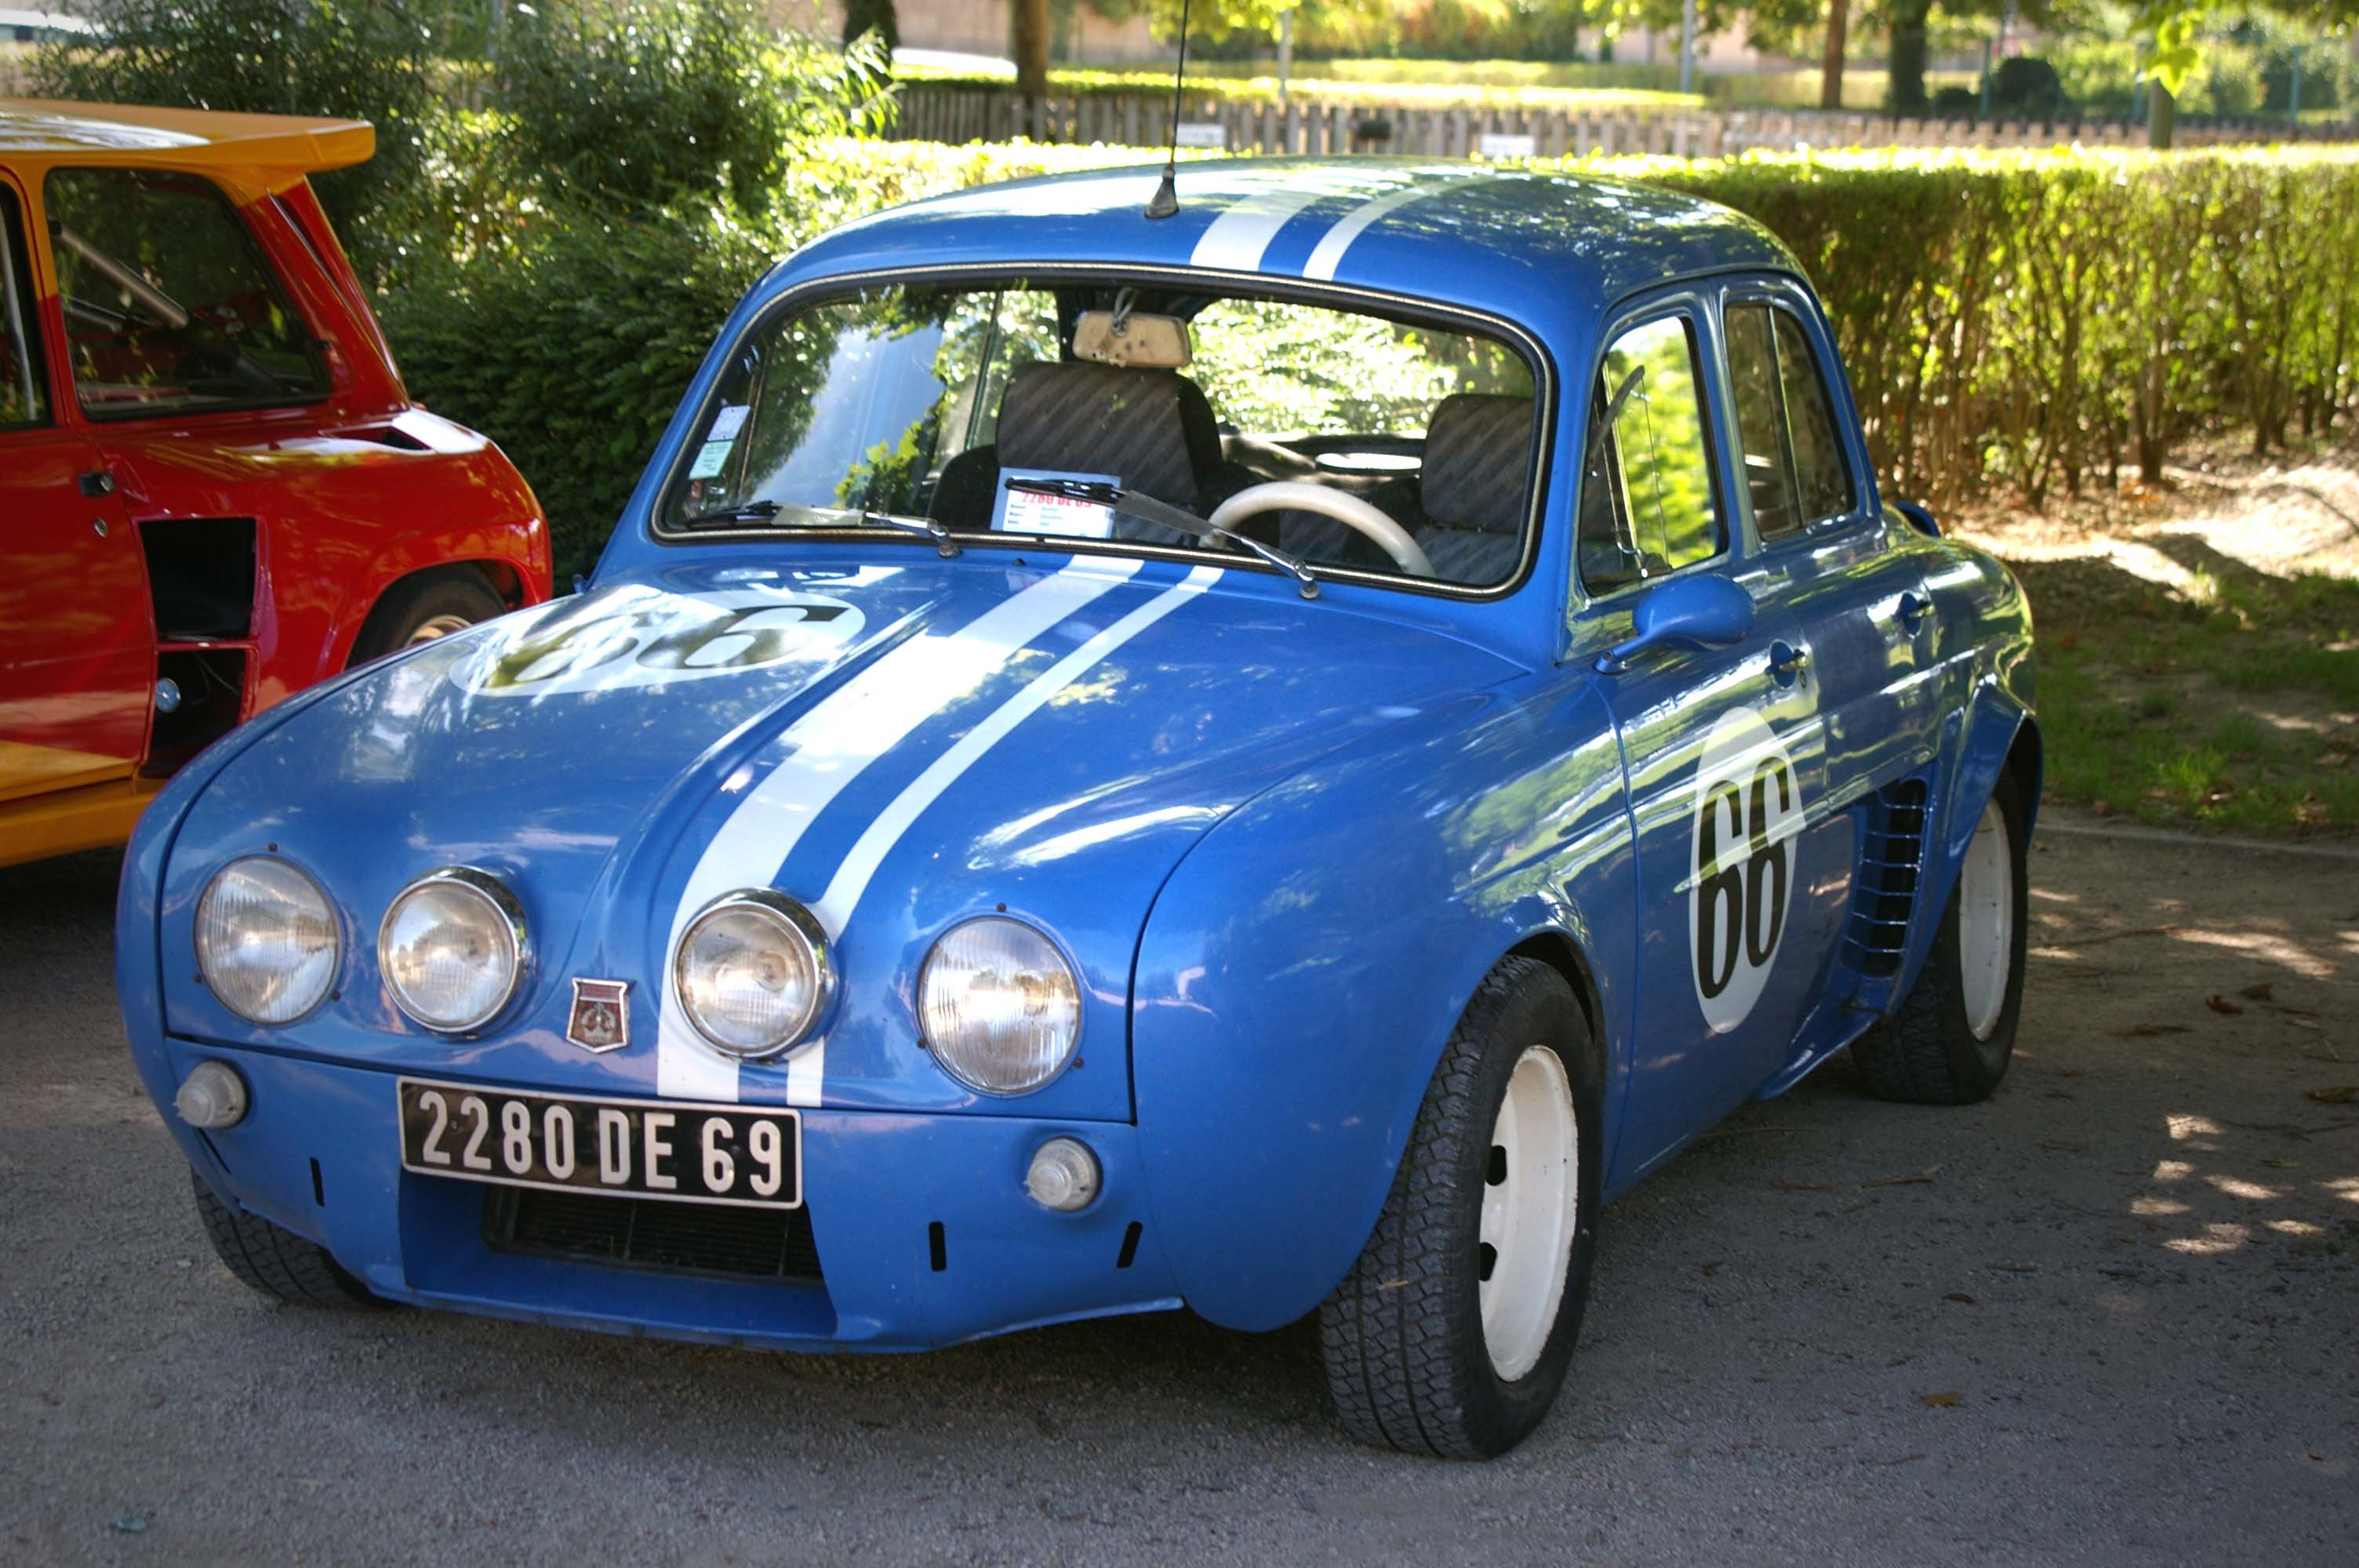 renault dauphine gordini classic cars french wallpaper 3008x2000 589547 wallpaperup. Black Bedroom Furniture Sets. Home Design Ideas